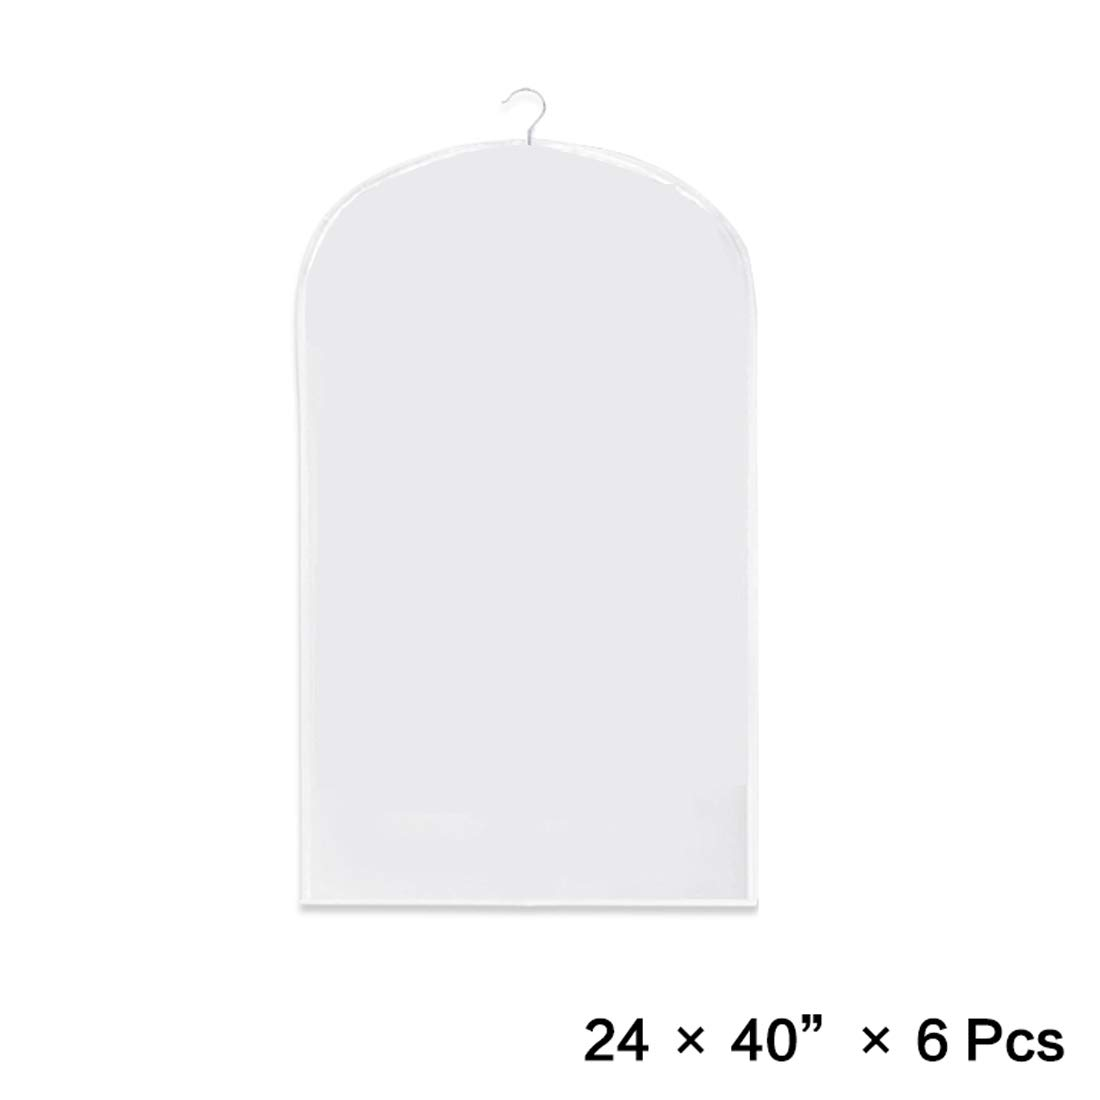 Pack of 6 Clothes Garment Bag, Light Weight,Dust-proof,Full Clear Zipper Suit Bag,Clothes Storage Suits Dress Dance or Travel(6 pack x 40'')